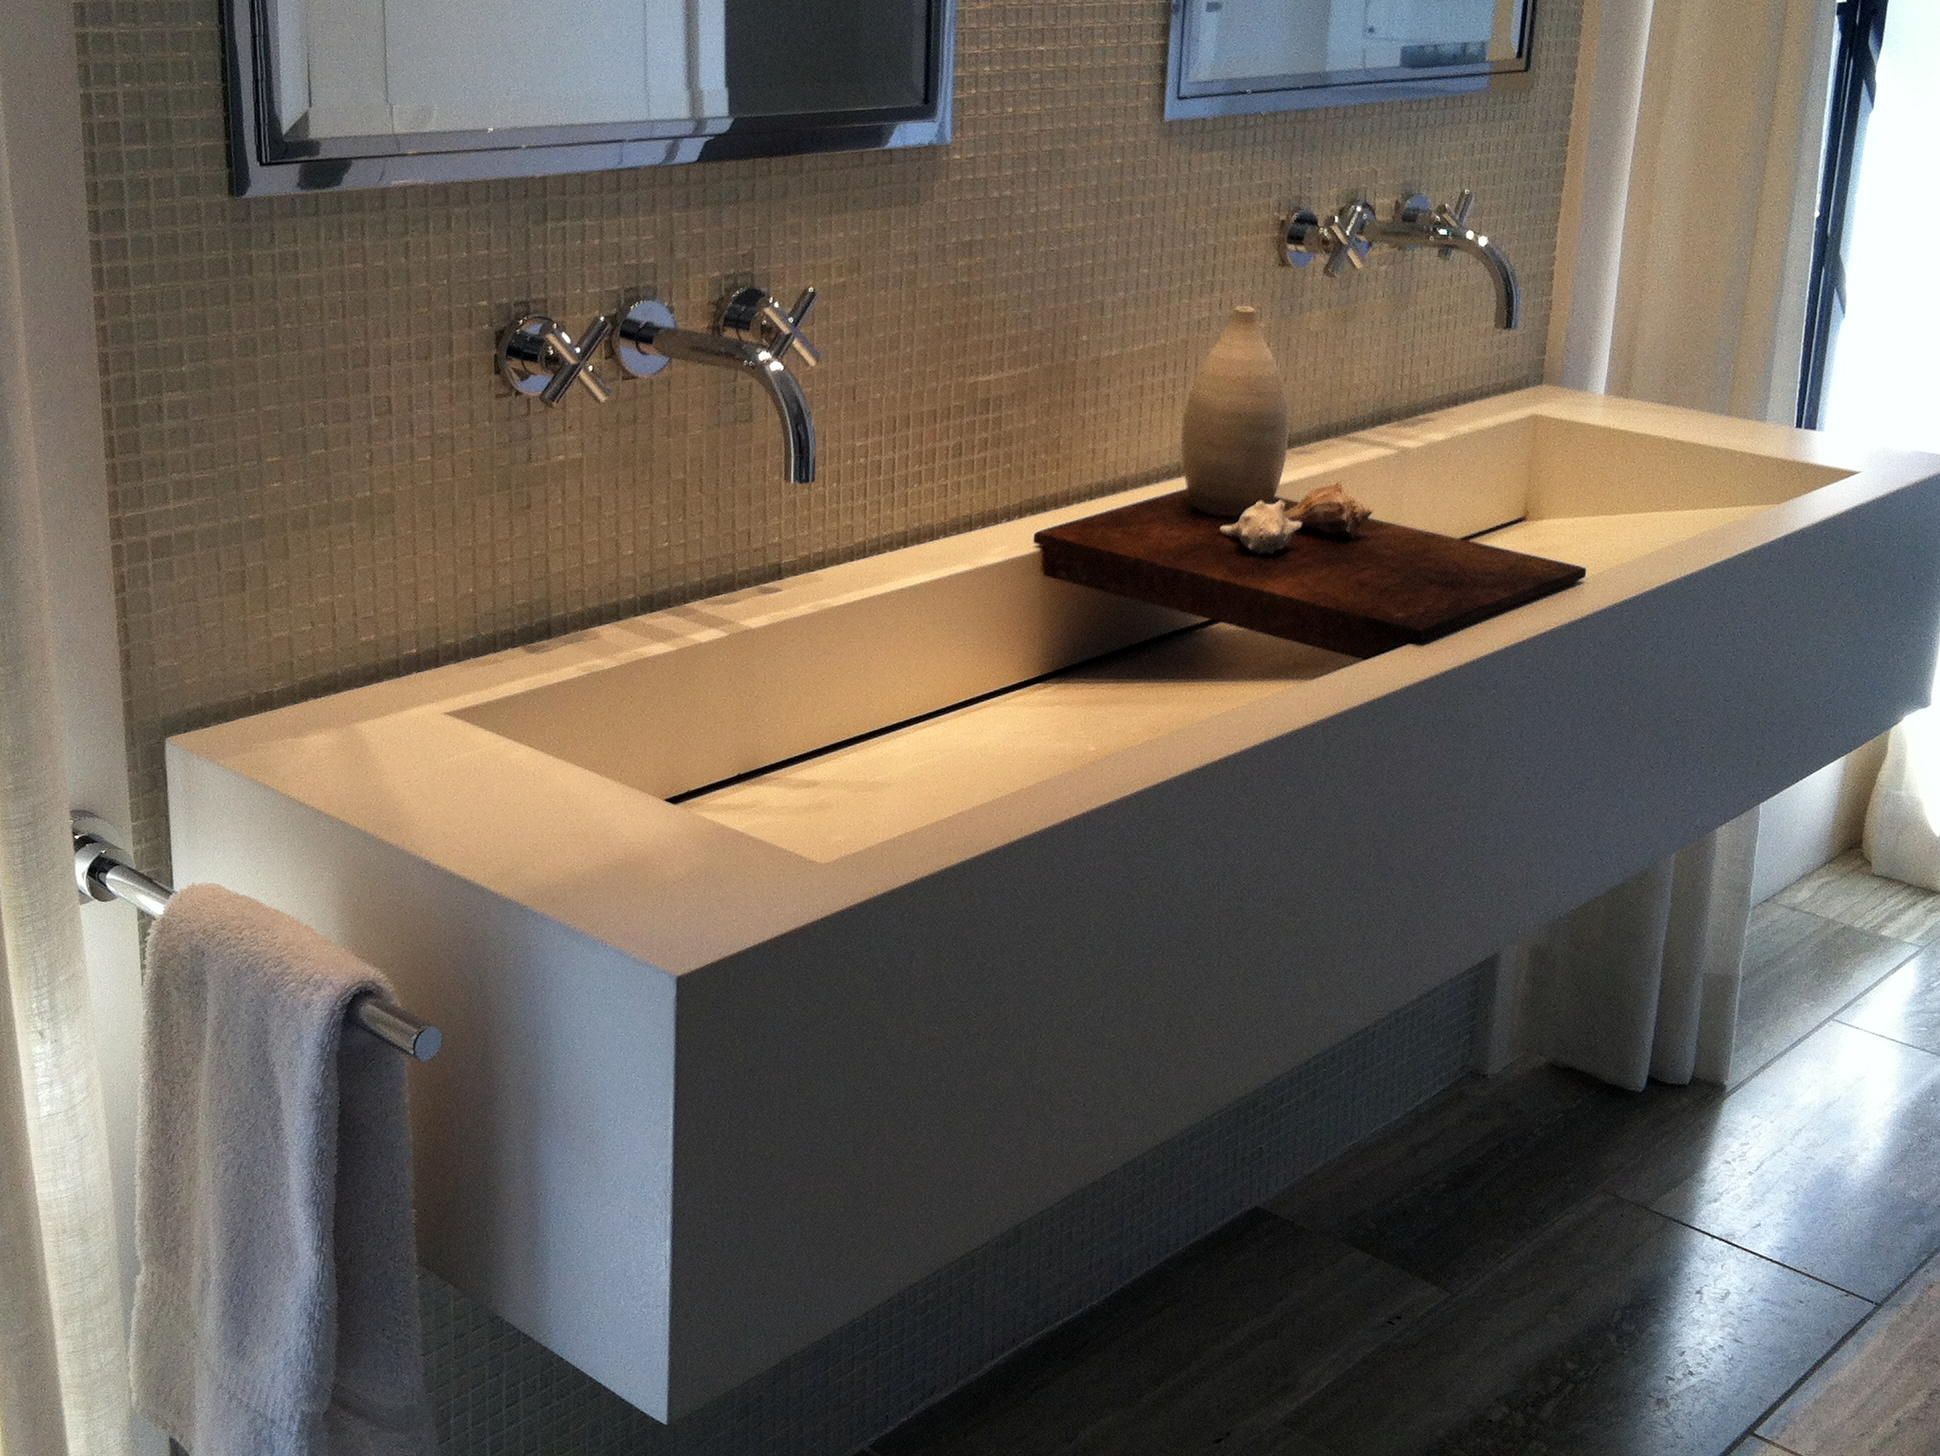 Double Bowl Laundry Trough : trough sink bathroom trough sinks modern bathroom sink double sink ...